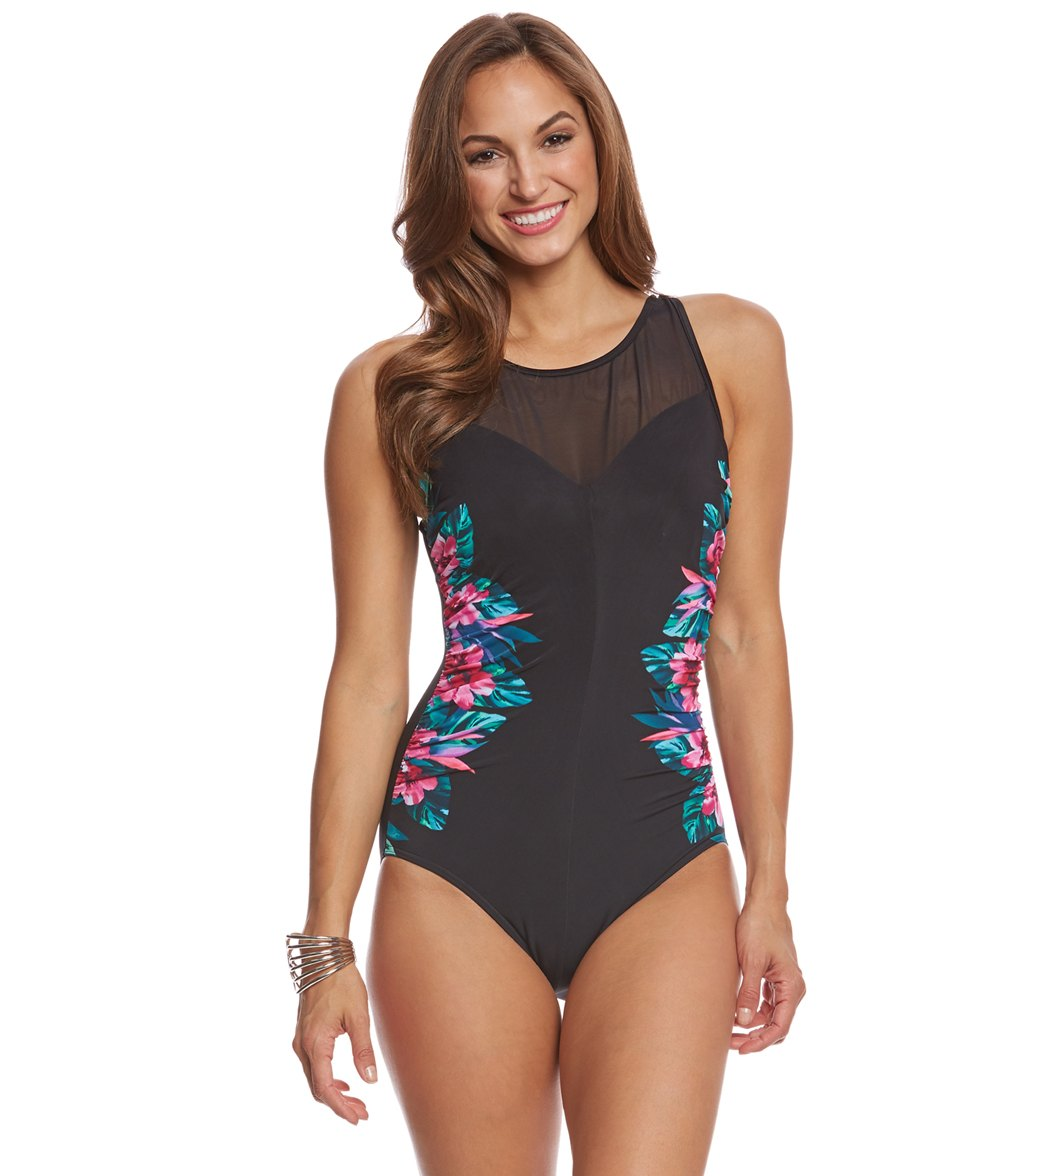 MiracleSuit High Neck side pattern swimsuit